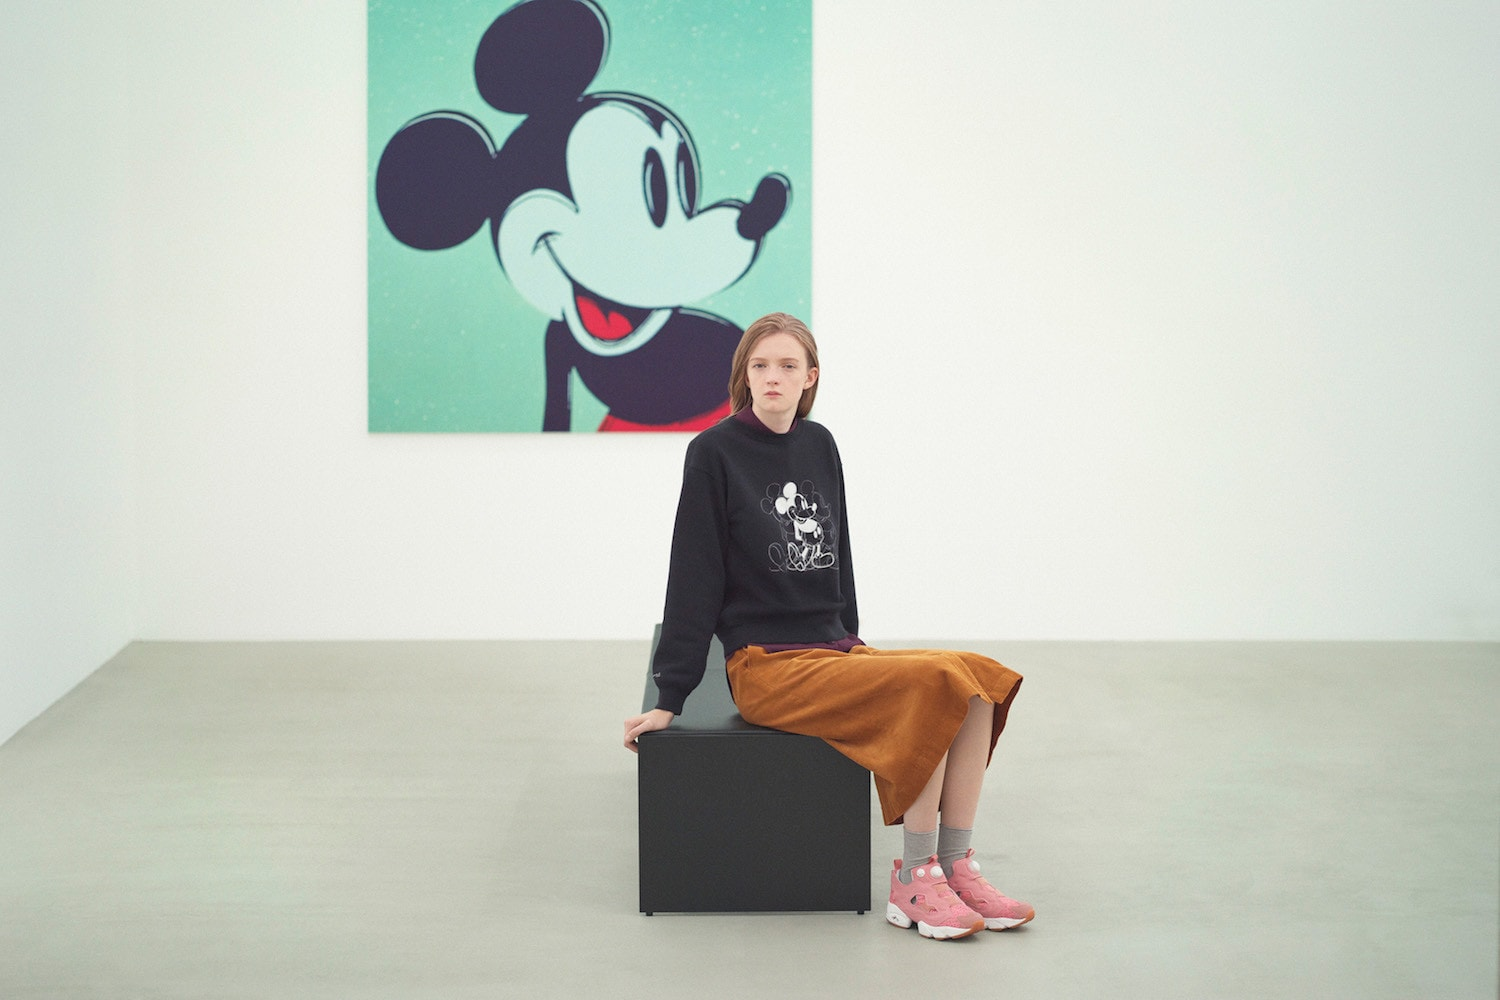 Model wearing a black jumper with Andy Warhol's pop artwork